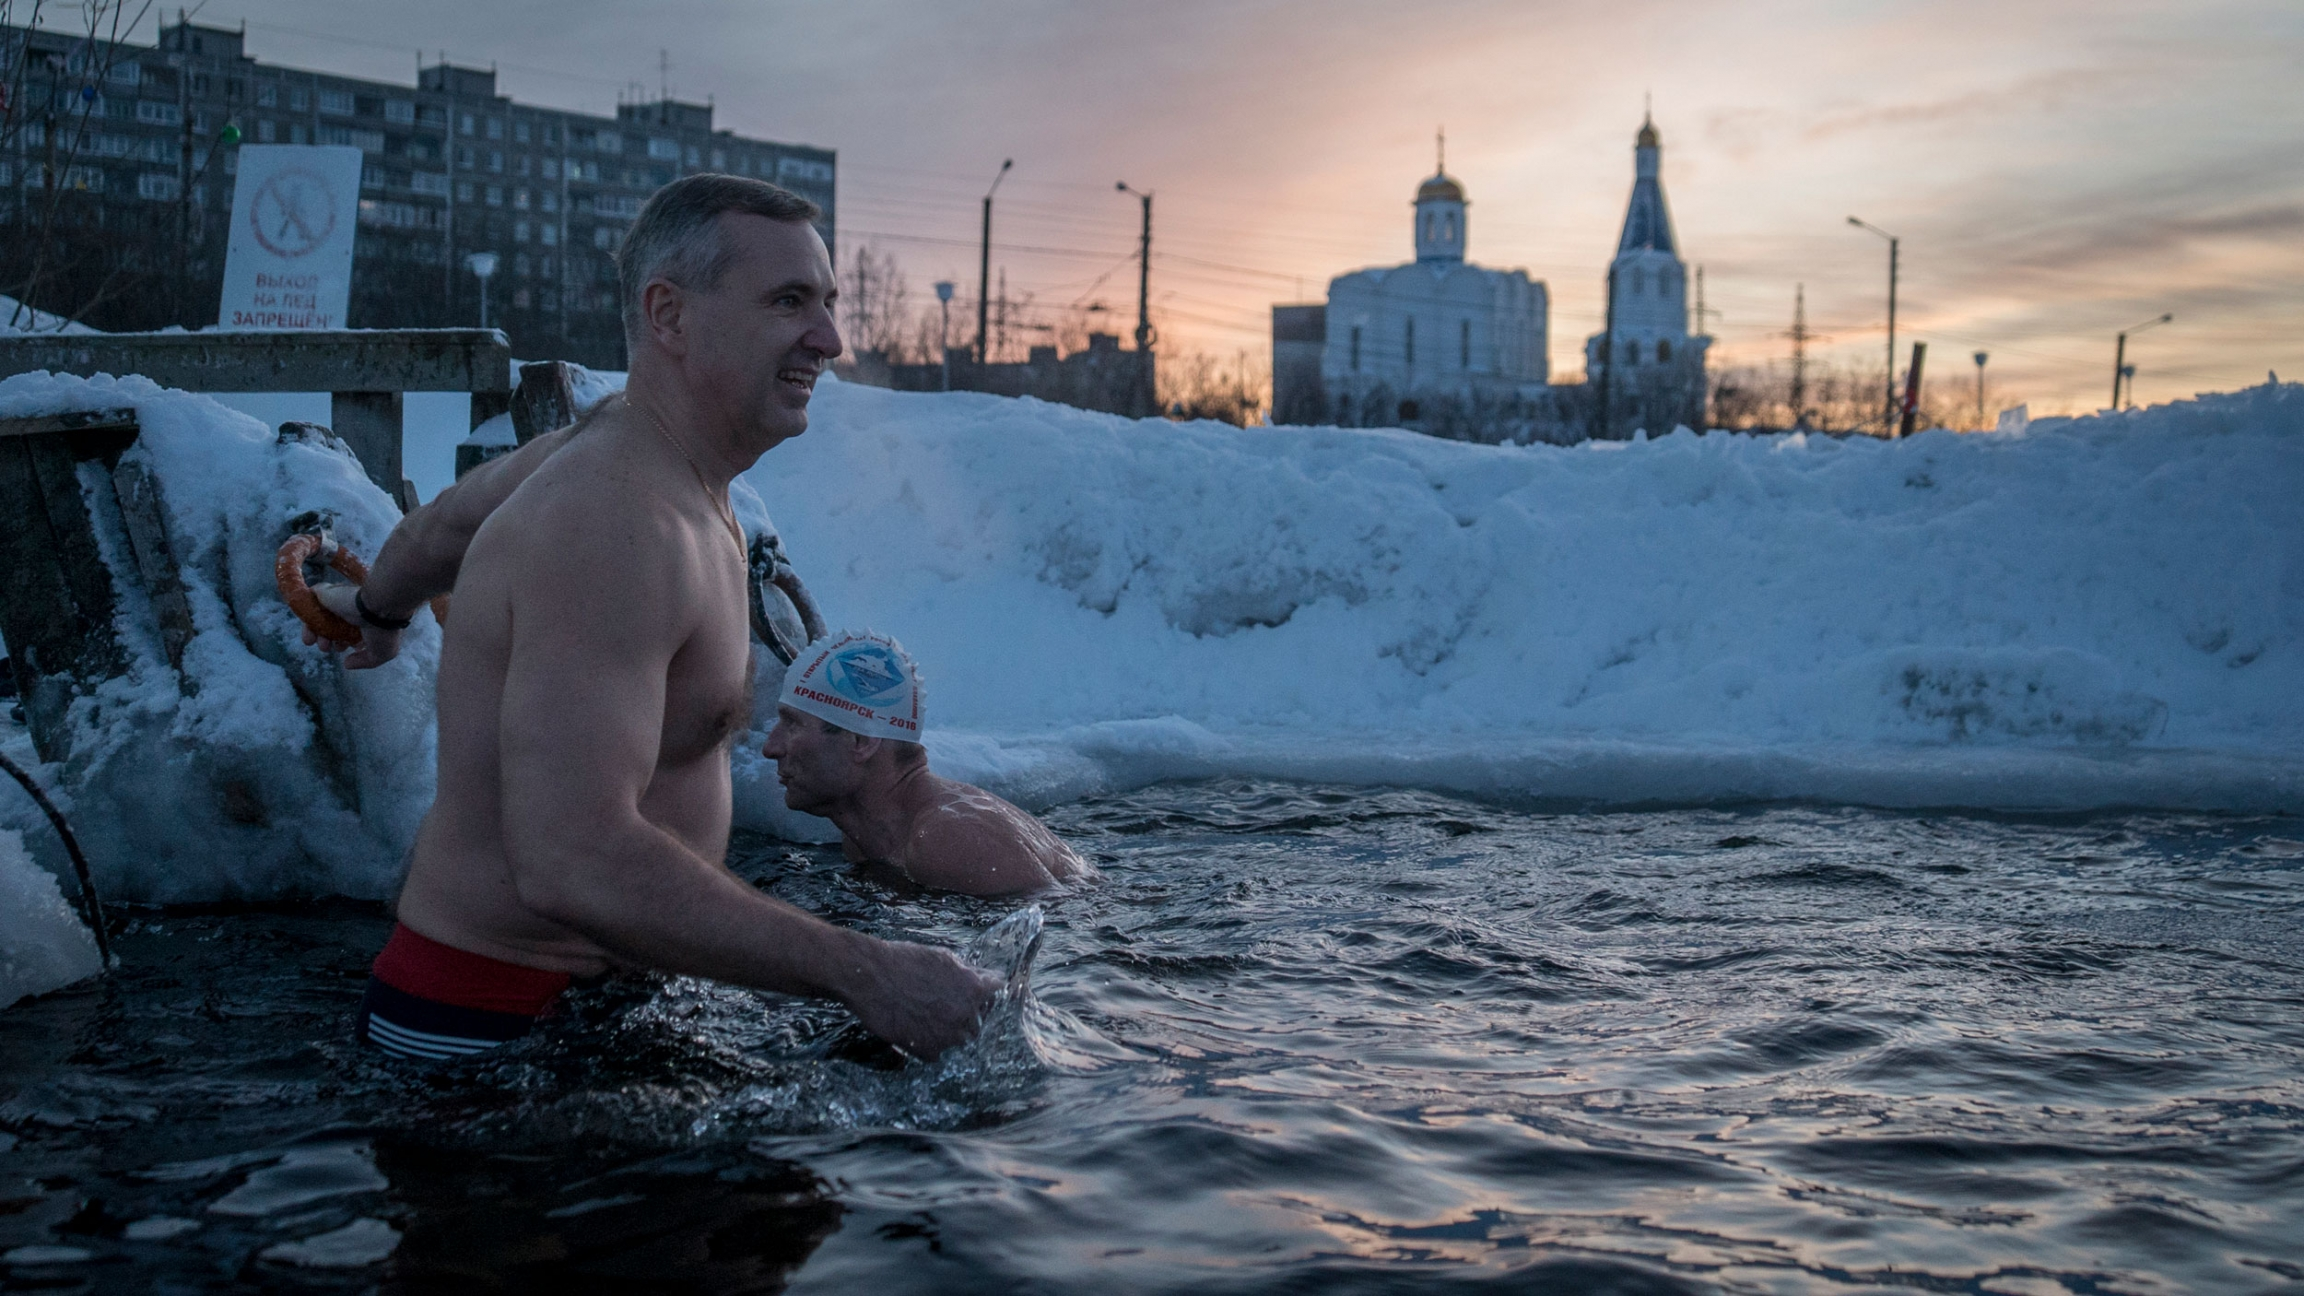 Alexander Spinul is shown without his shirt on and swims in an ice hole.